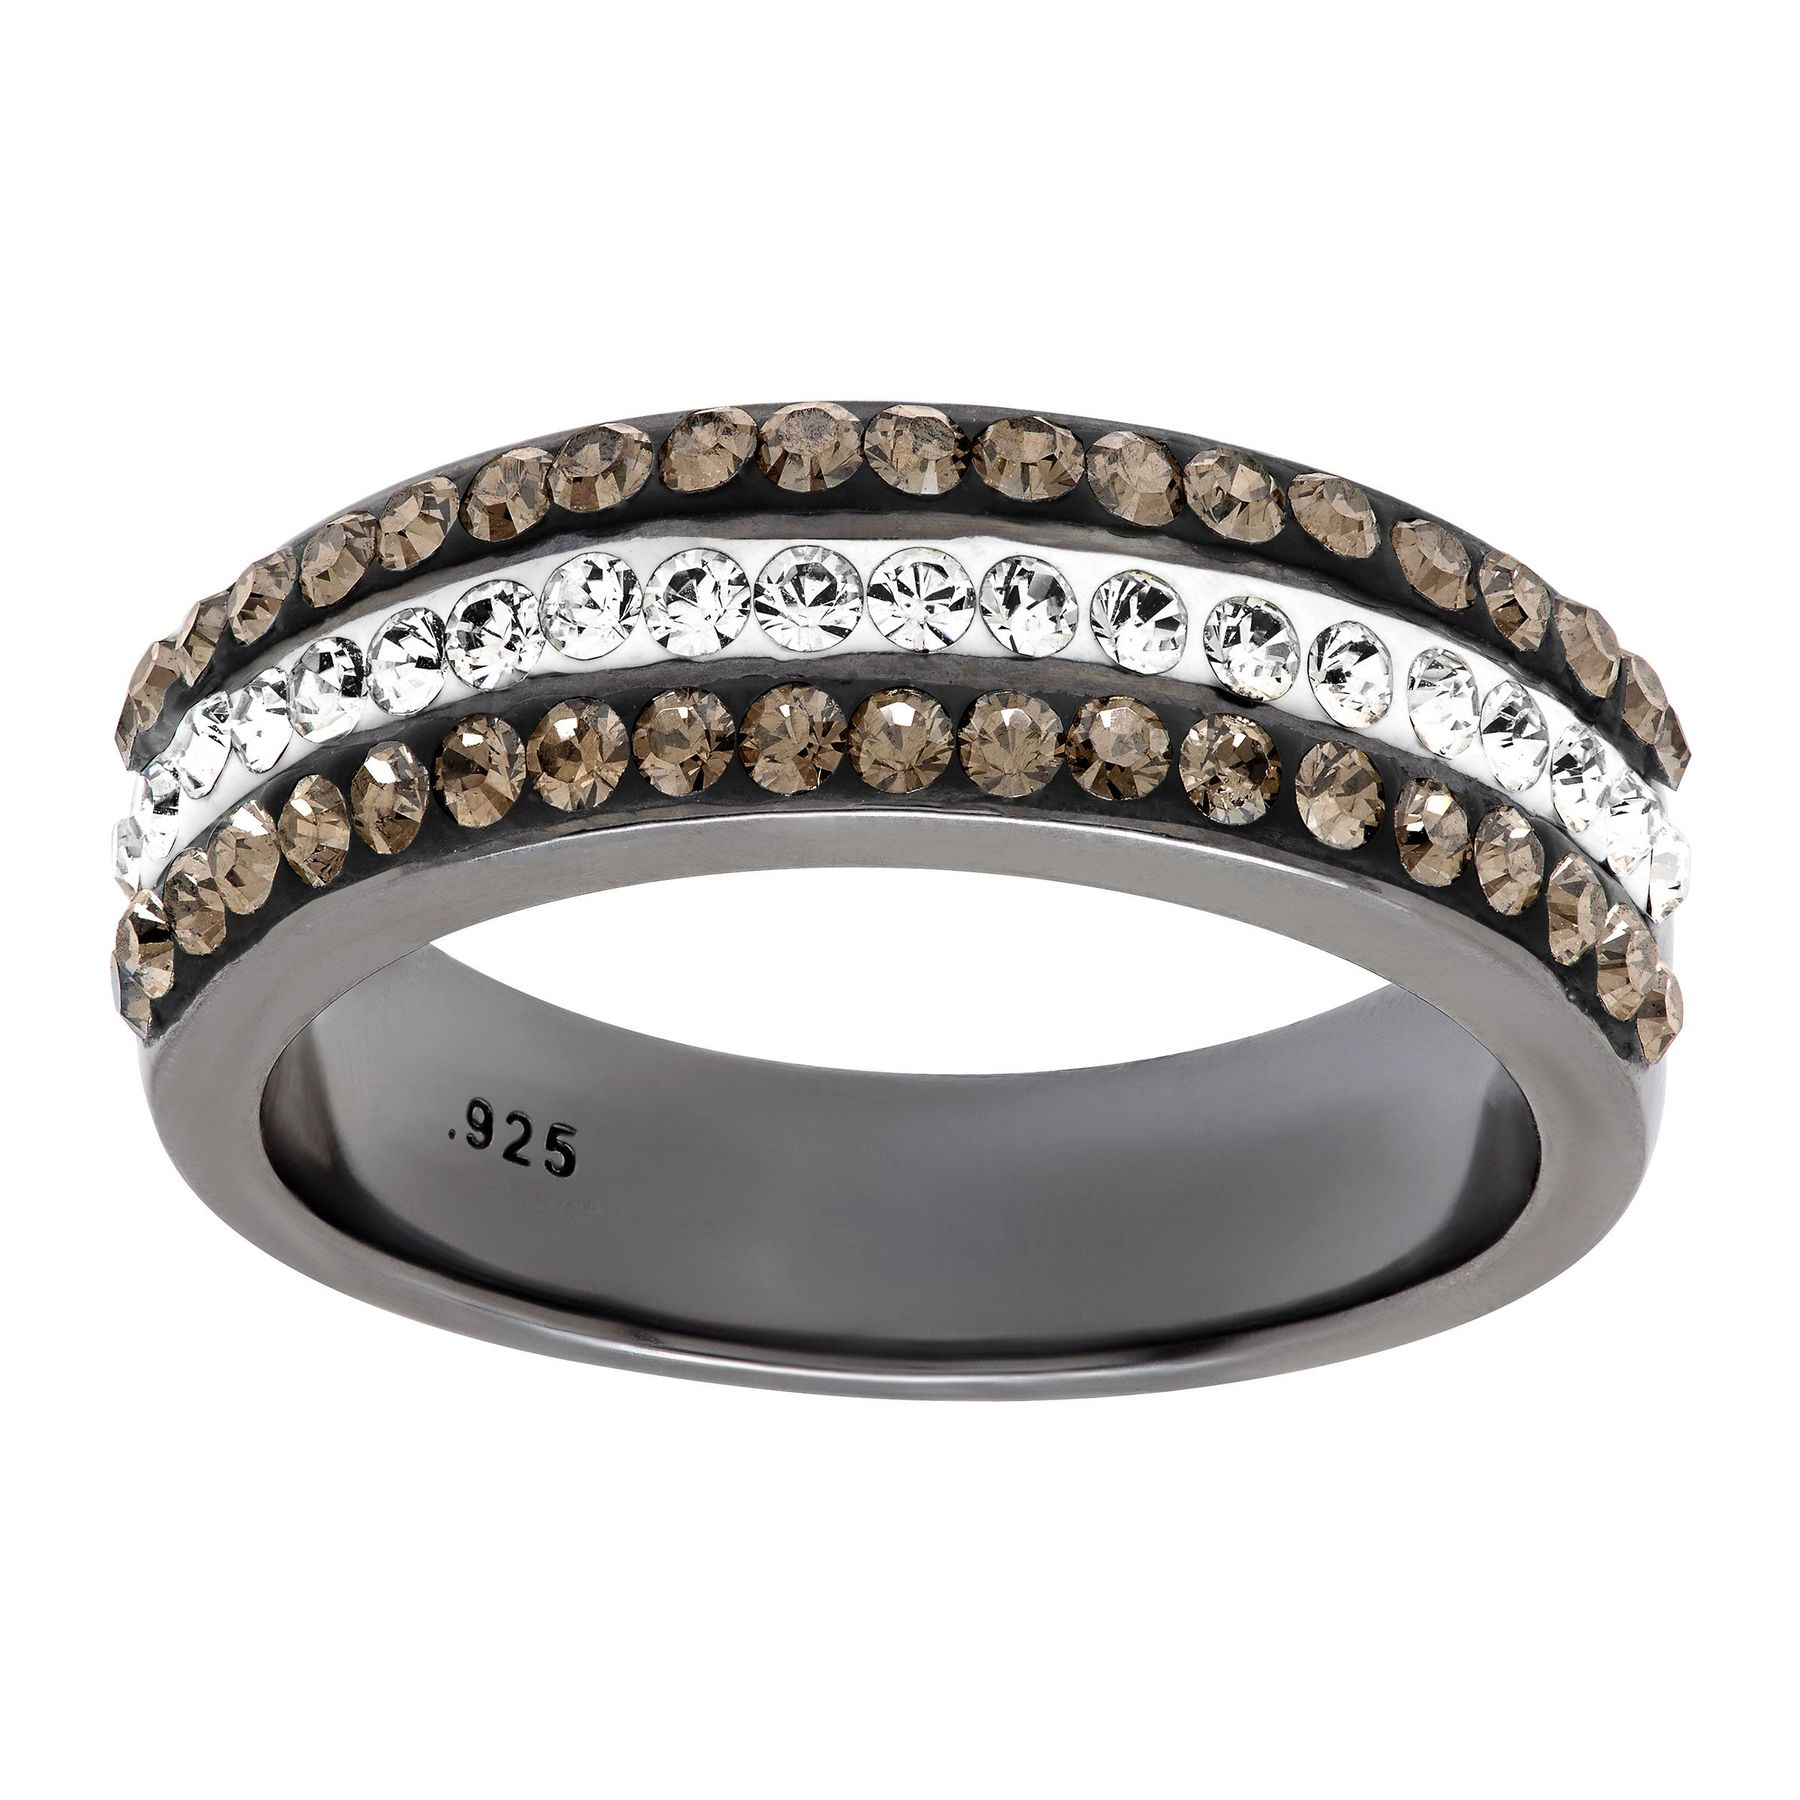 9c0b5def5 Crystaluxe Triple Band Ring With Swarovski Crystals In Black Rhodium